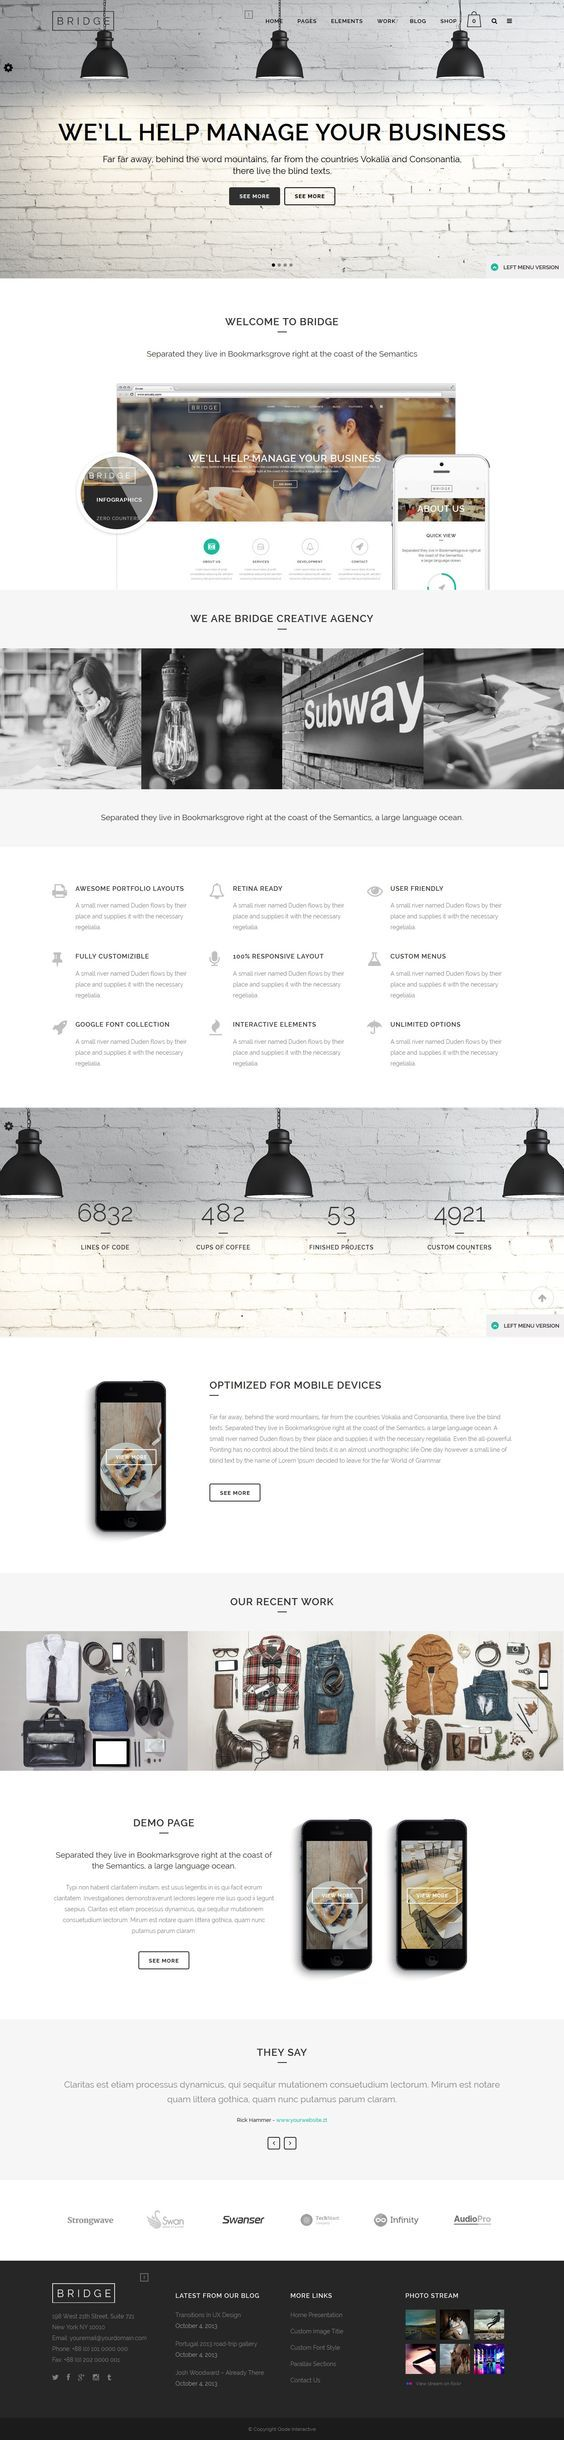 12+ Best CreAtive Onepage WordPress Themes 2014 #web #design #wordpress: